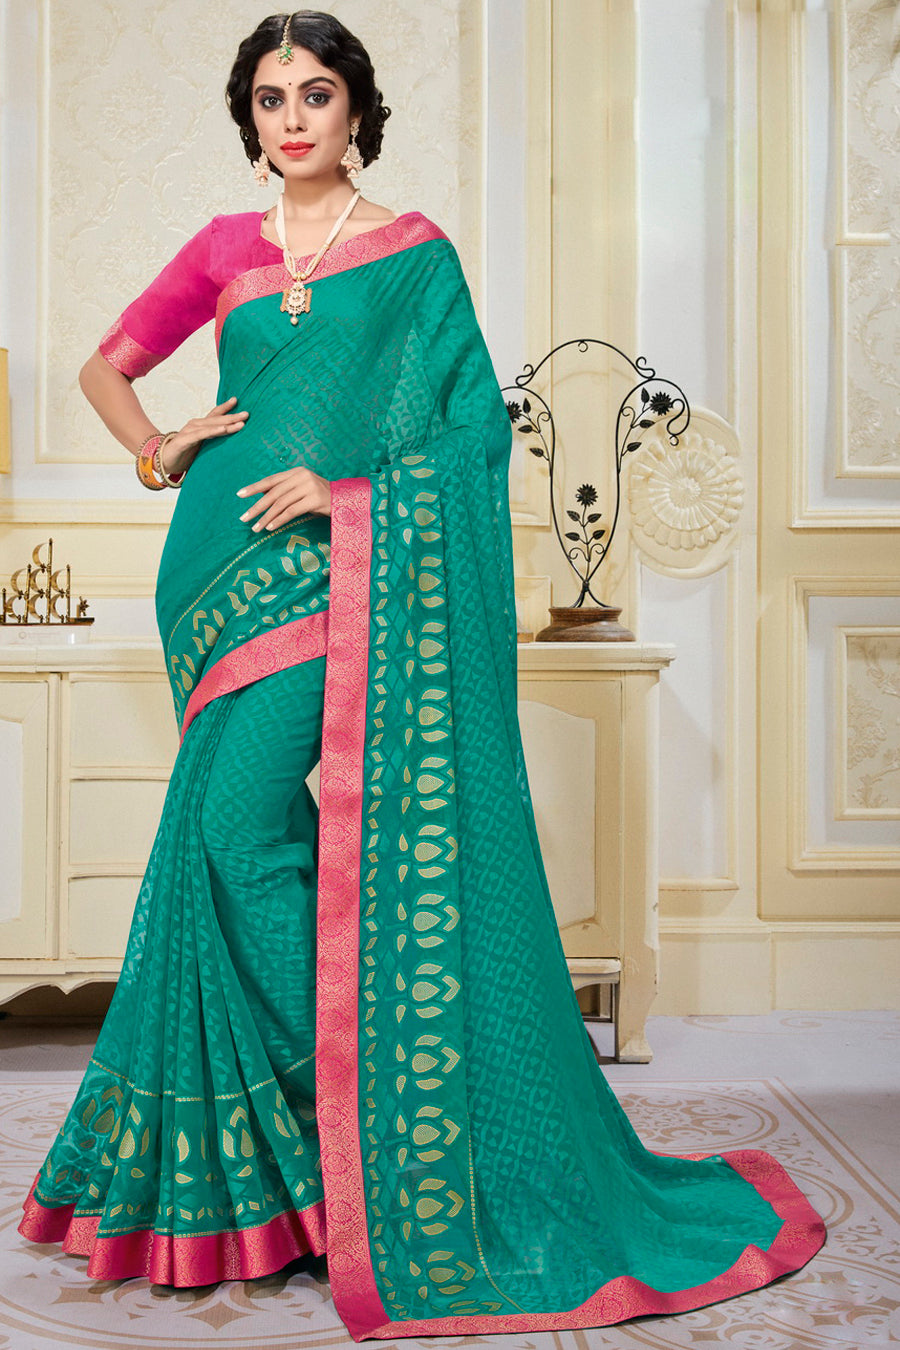 Firozi Color Chiffon Brasso Radiant Party Wear Sarees NYF-9502